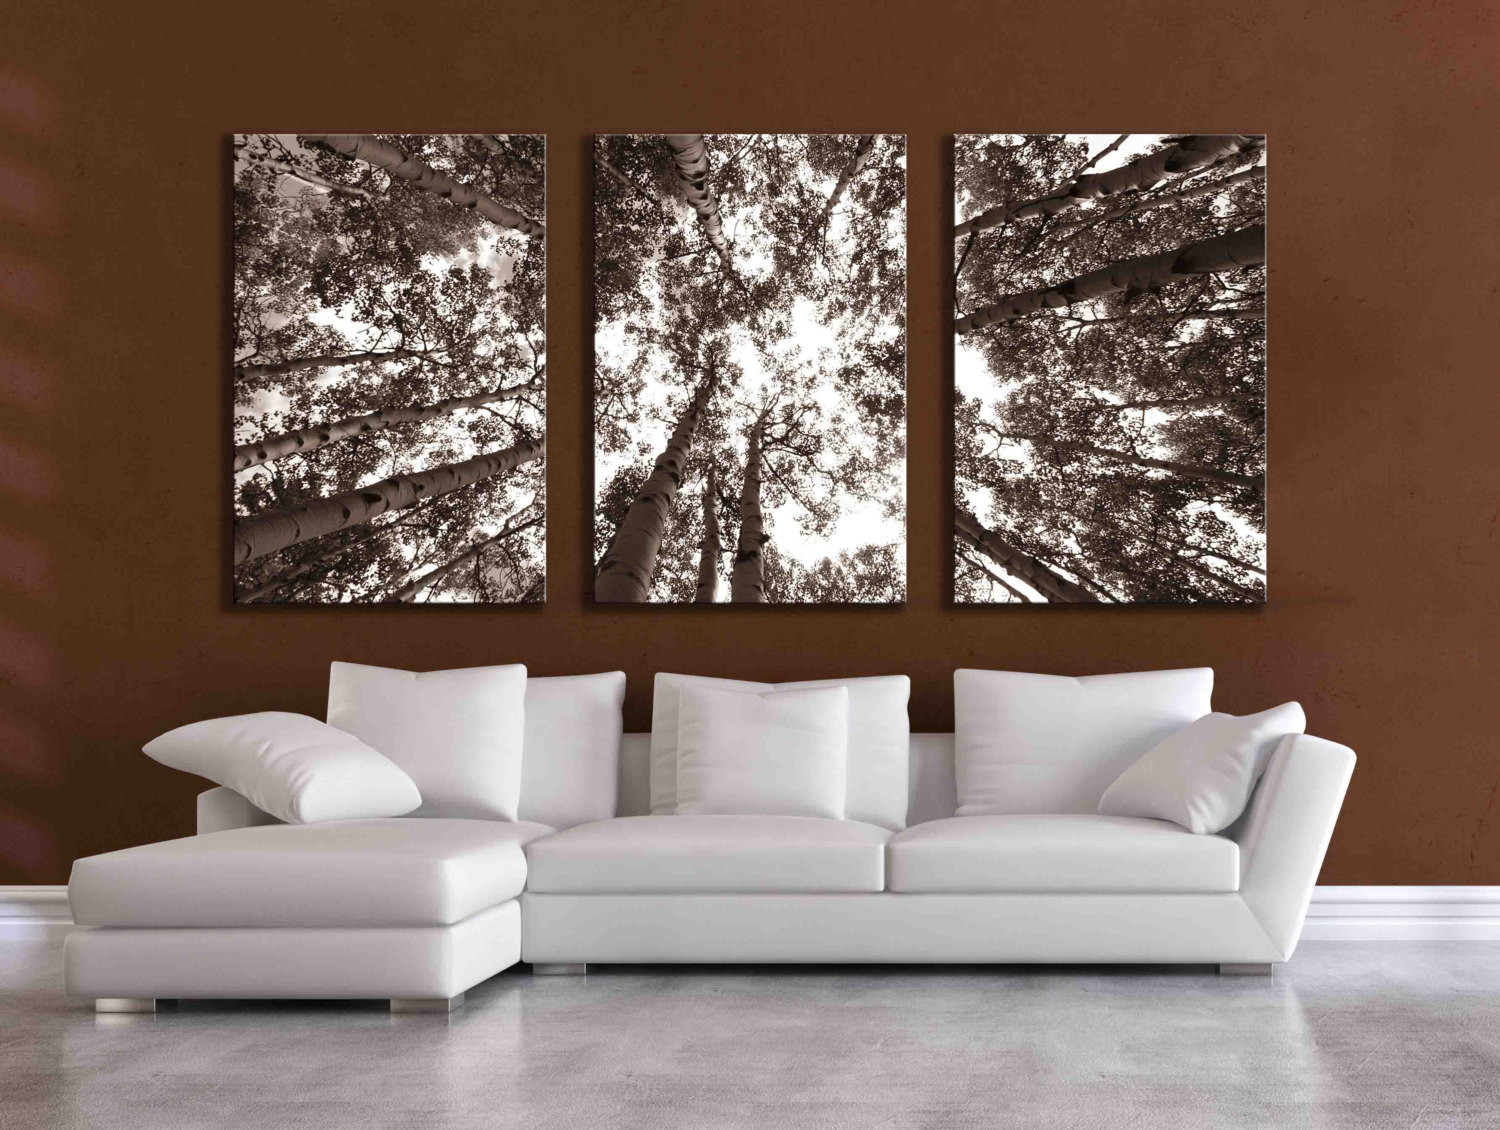 Best ideas about Panel Wall Art . Save or Pin Three large multi panel wall art aspen 20x24 inch or 24x36 Now.